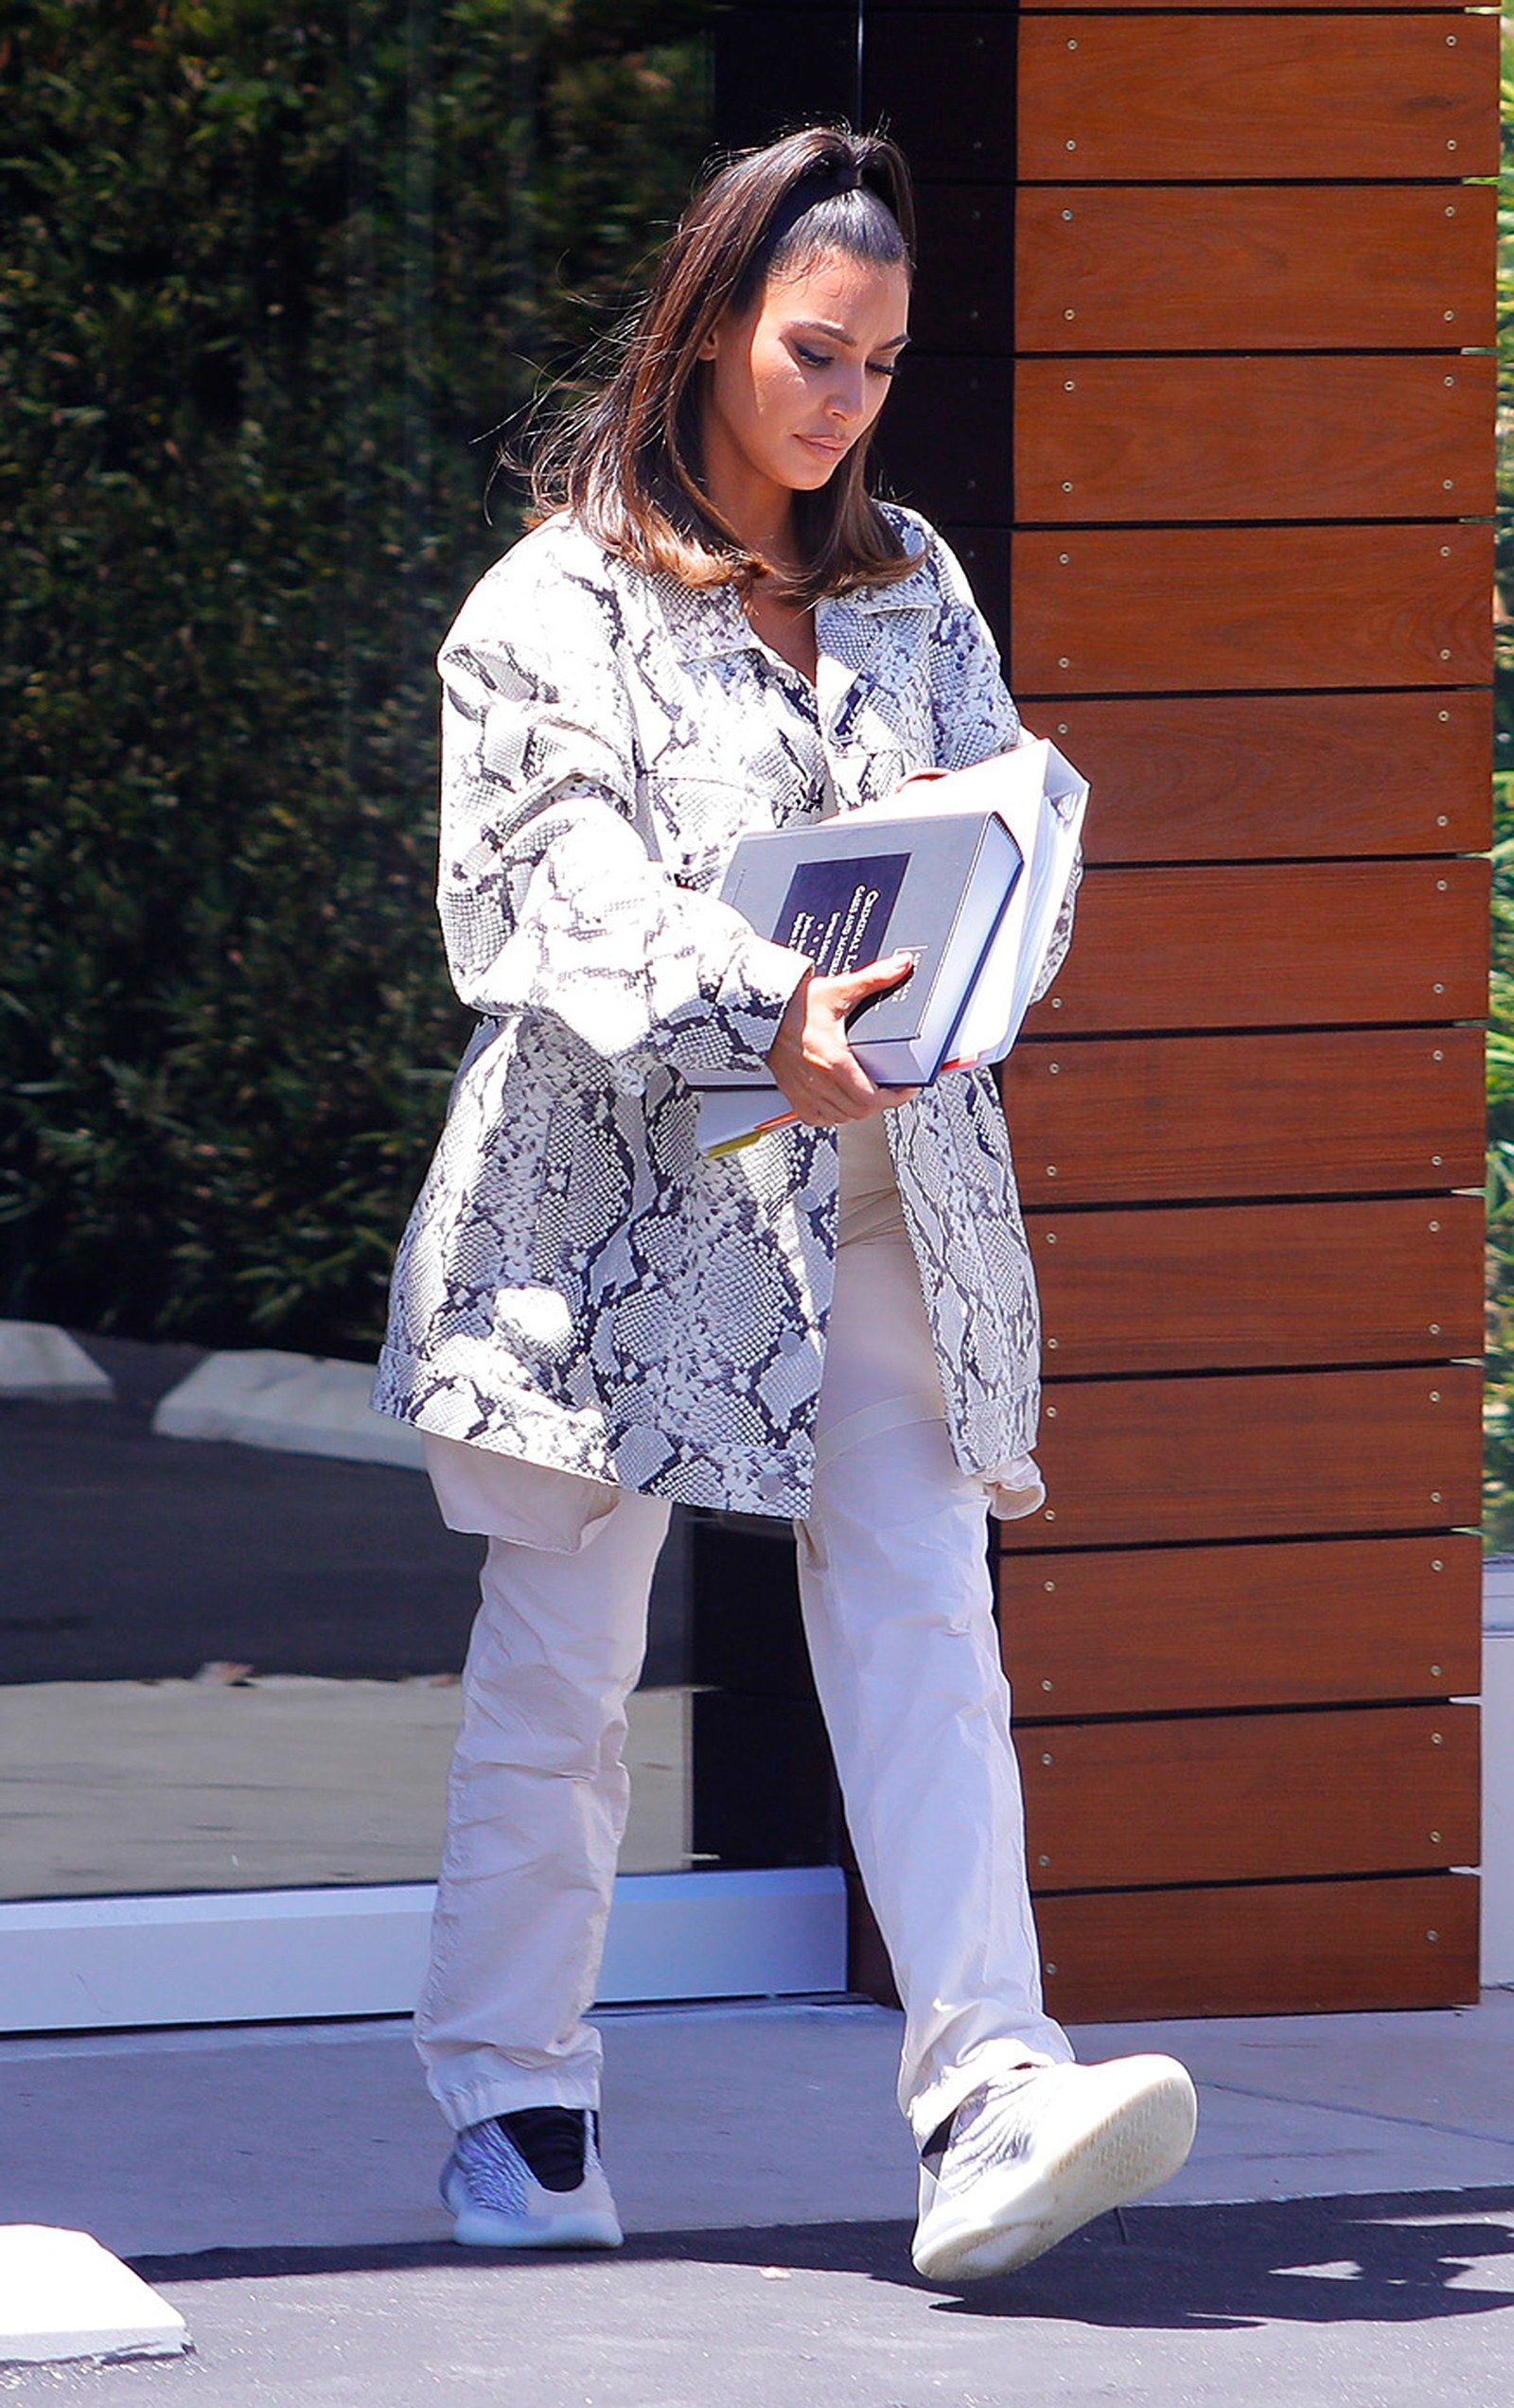 Aspiring Lawyer Kim Kardashian West Matched Her Look To Her Textbook